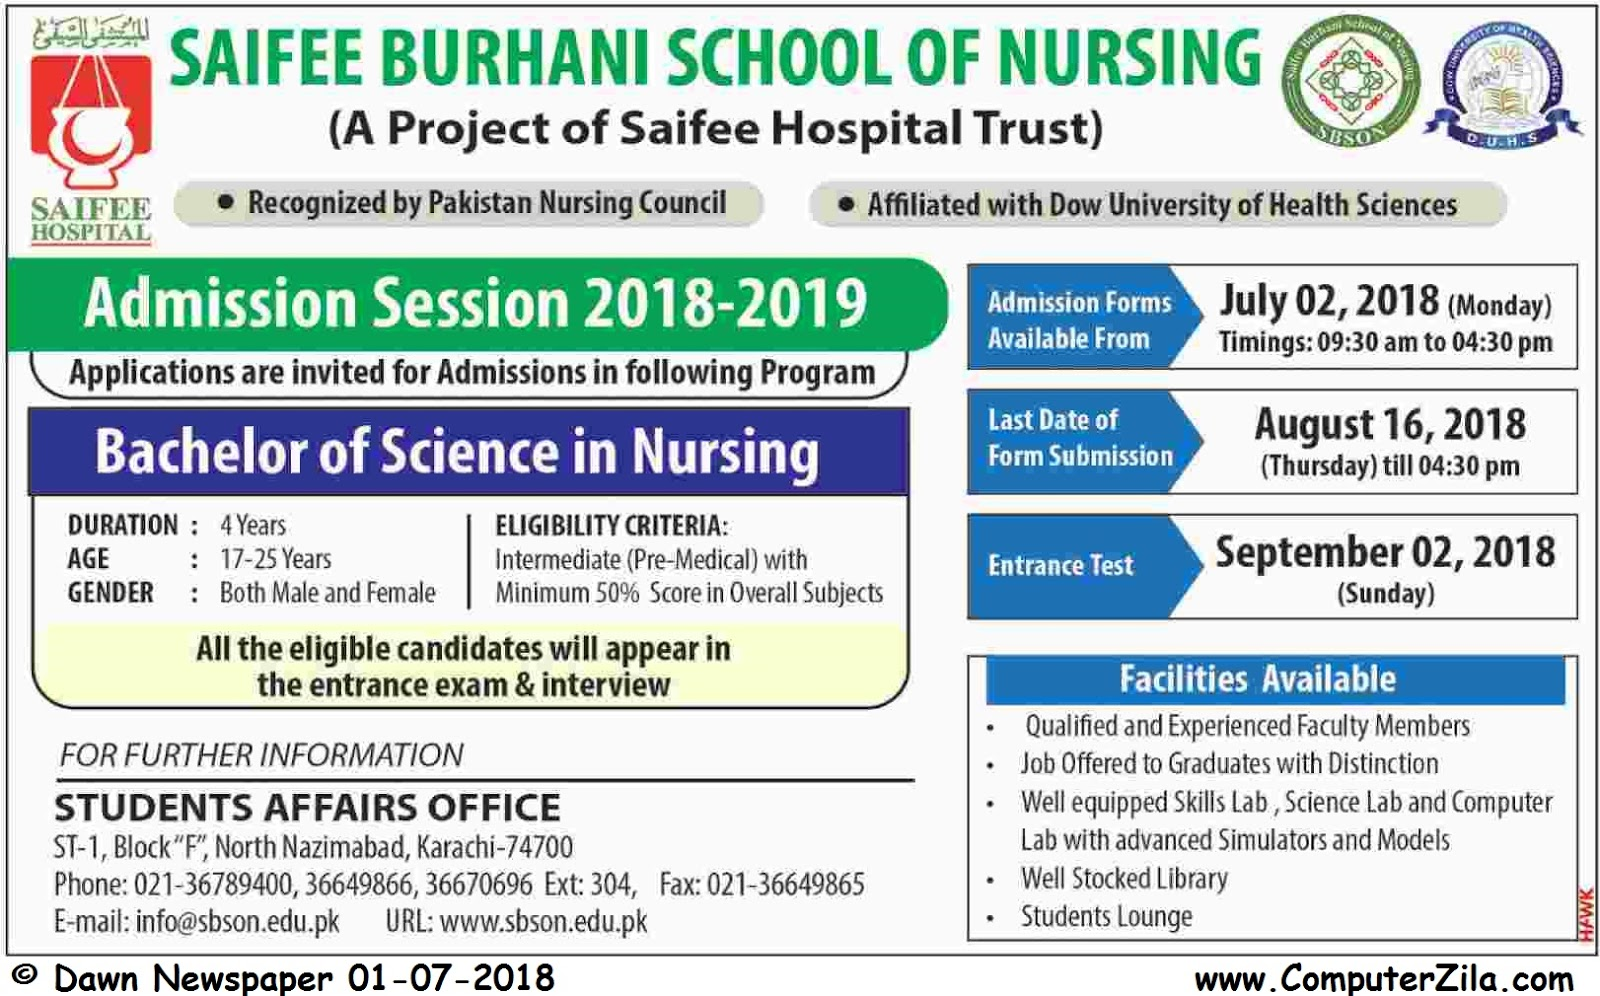 Saifee Burhani School of Nursing Admissions Fall 2018